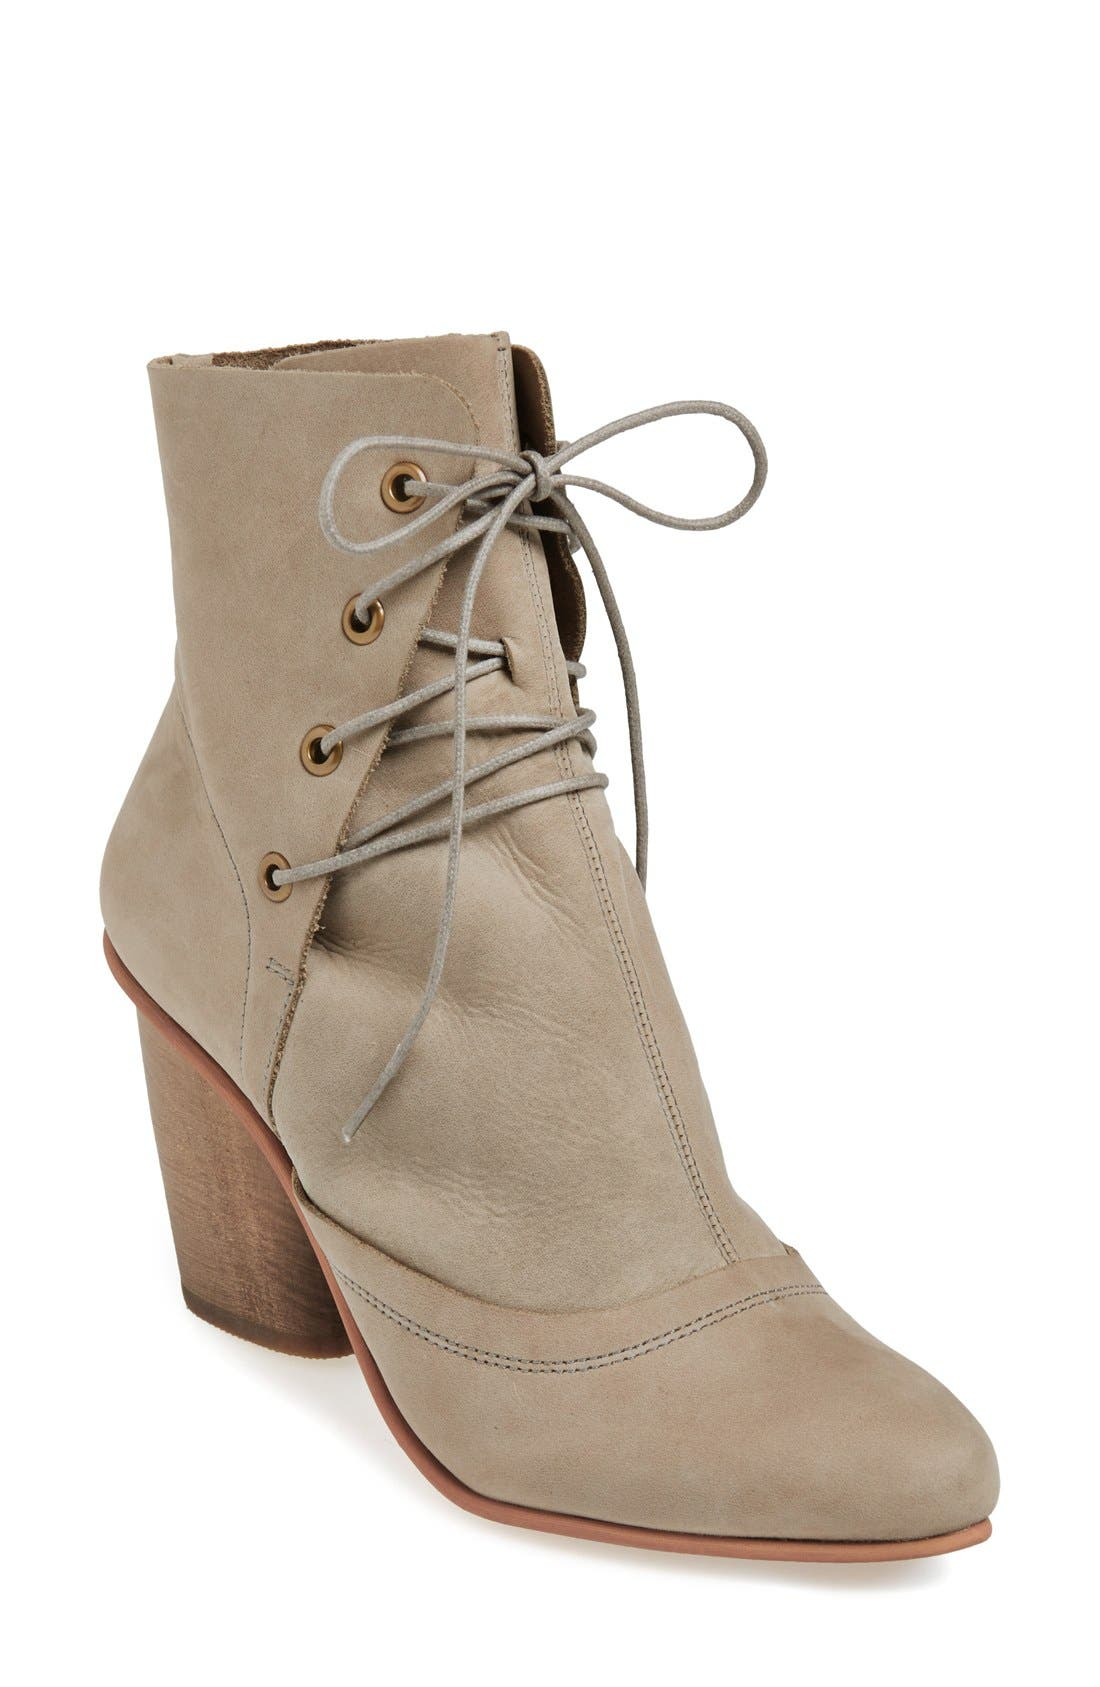 Alternate Image 1 Selected - J SHOES 'Sadie' Leather Bootie (Women)